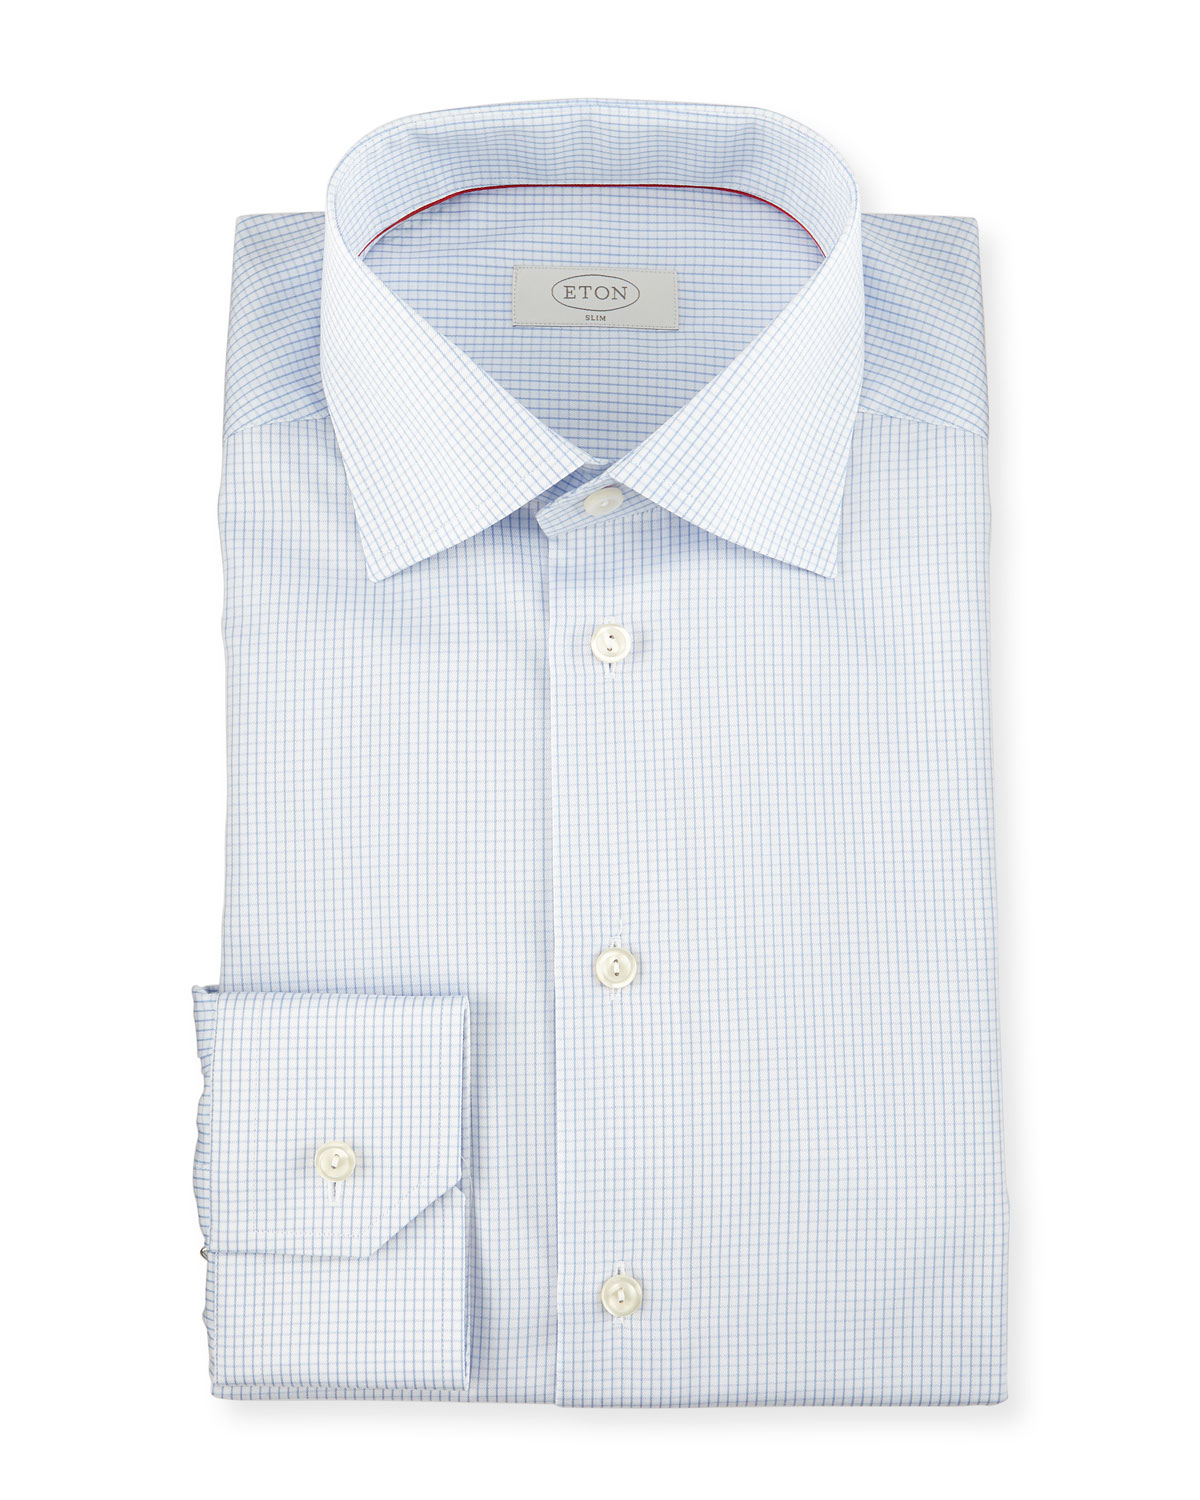 Eton of sweden slim fit graph check woven dress shirt in for Blue check dress shirt